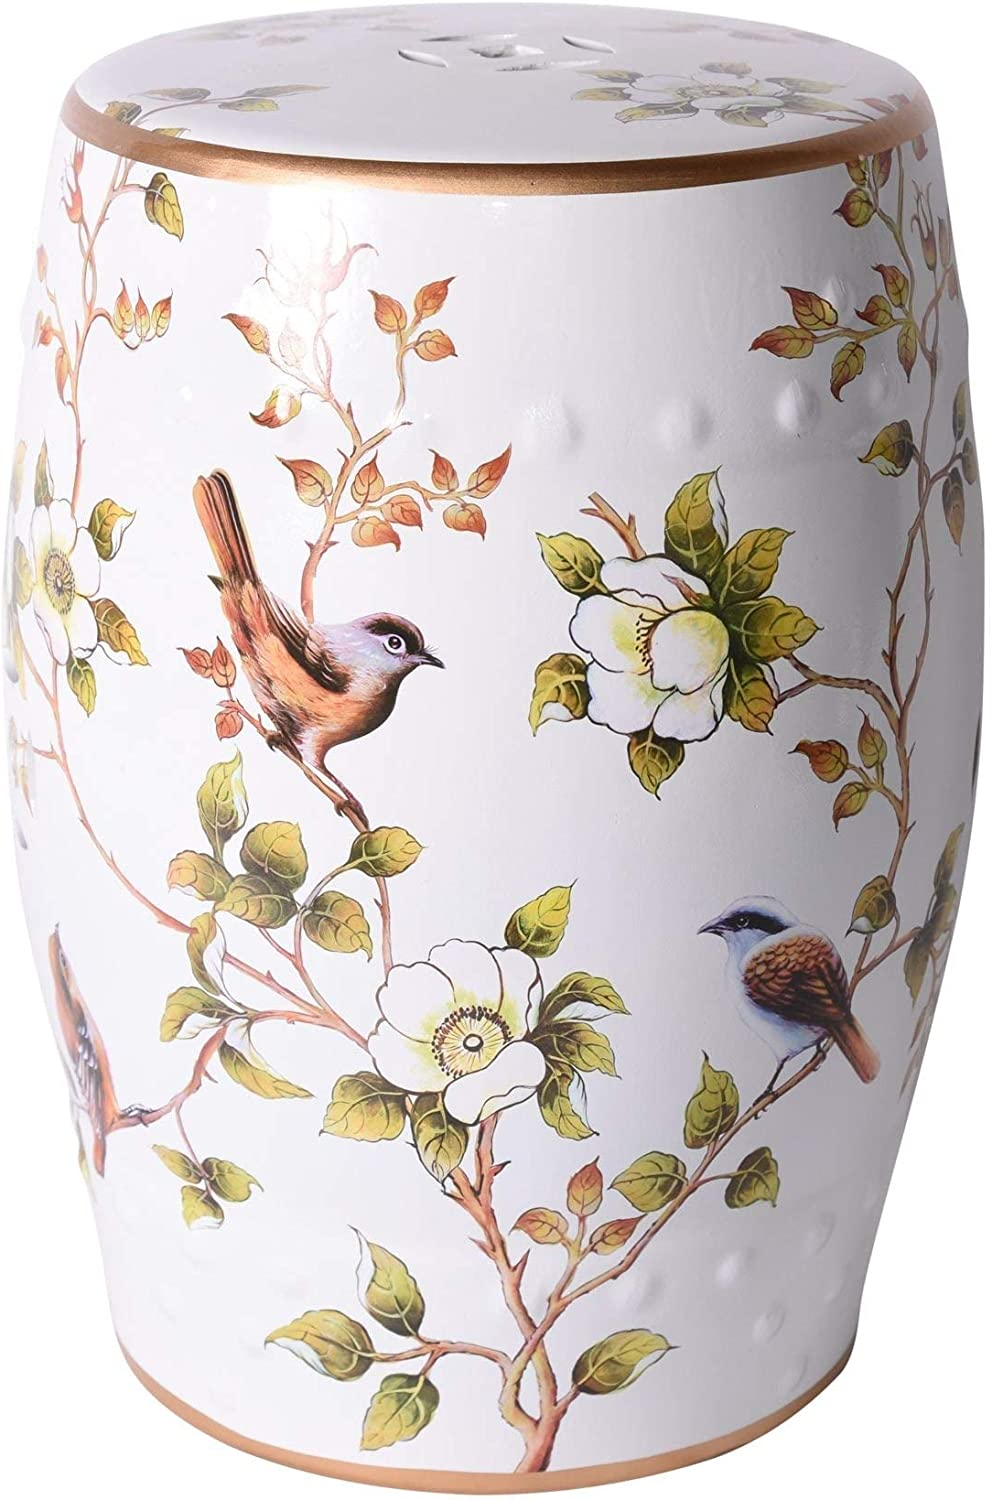 UKN Cream Max 61% OFF White Over item handling ☆ Garden Stool with Porc Birds and Flower 13x13x18